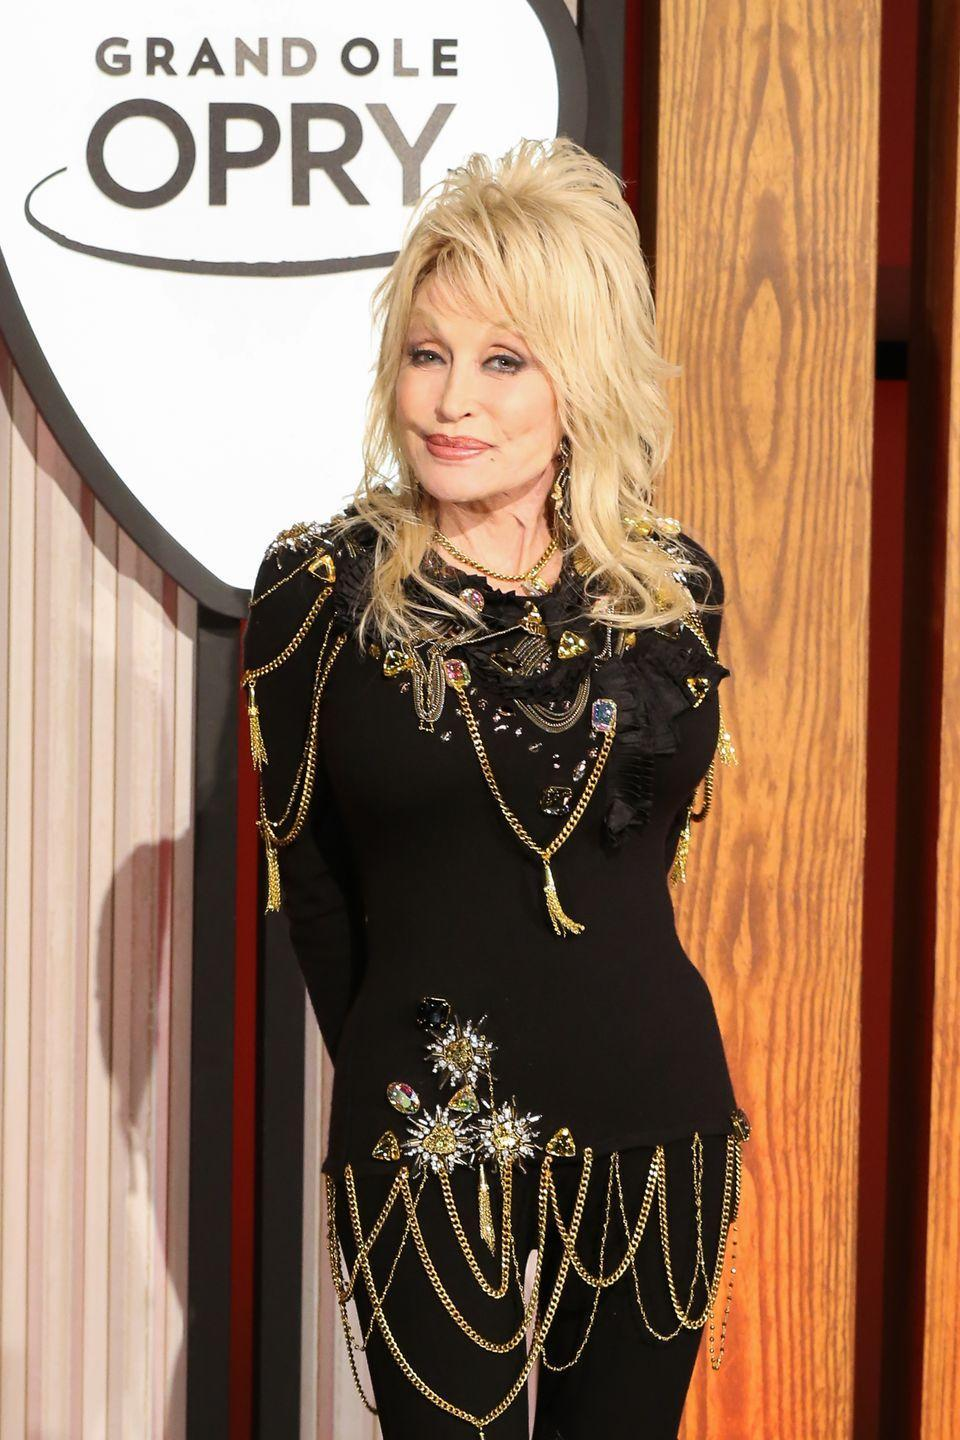 <p>Dolly achieved her childhood dream and then some when she performed at two sold-out shows at the Grand Ole Opry for the legendary Tennessee concert venue's 50th anniversary.</p>